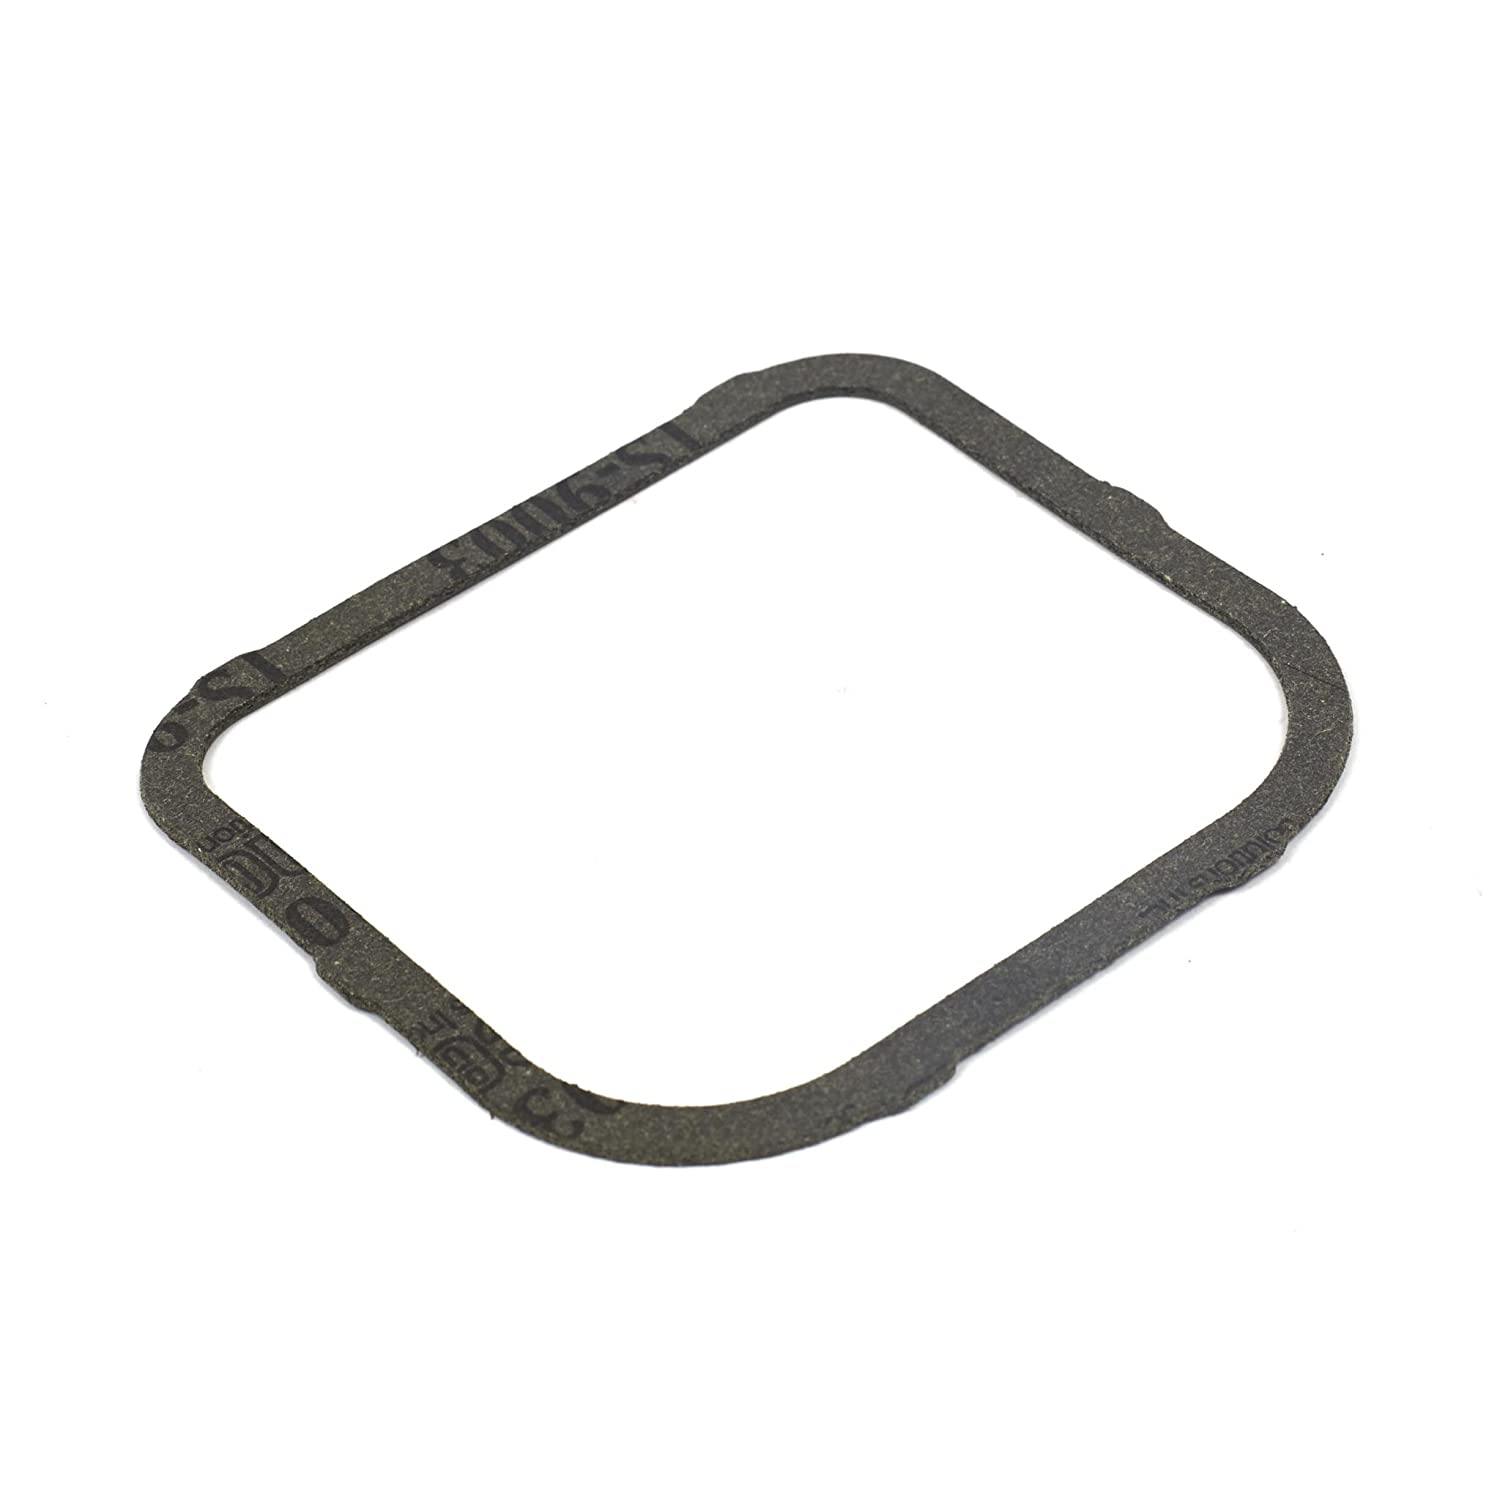 Briggs & Stratton 806039S Rocker Cover Gasket Replaces 806039/805028